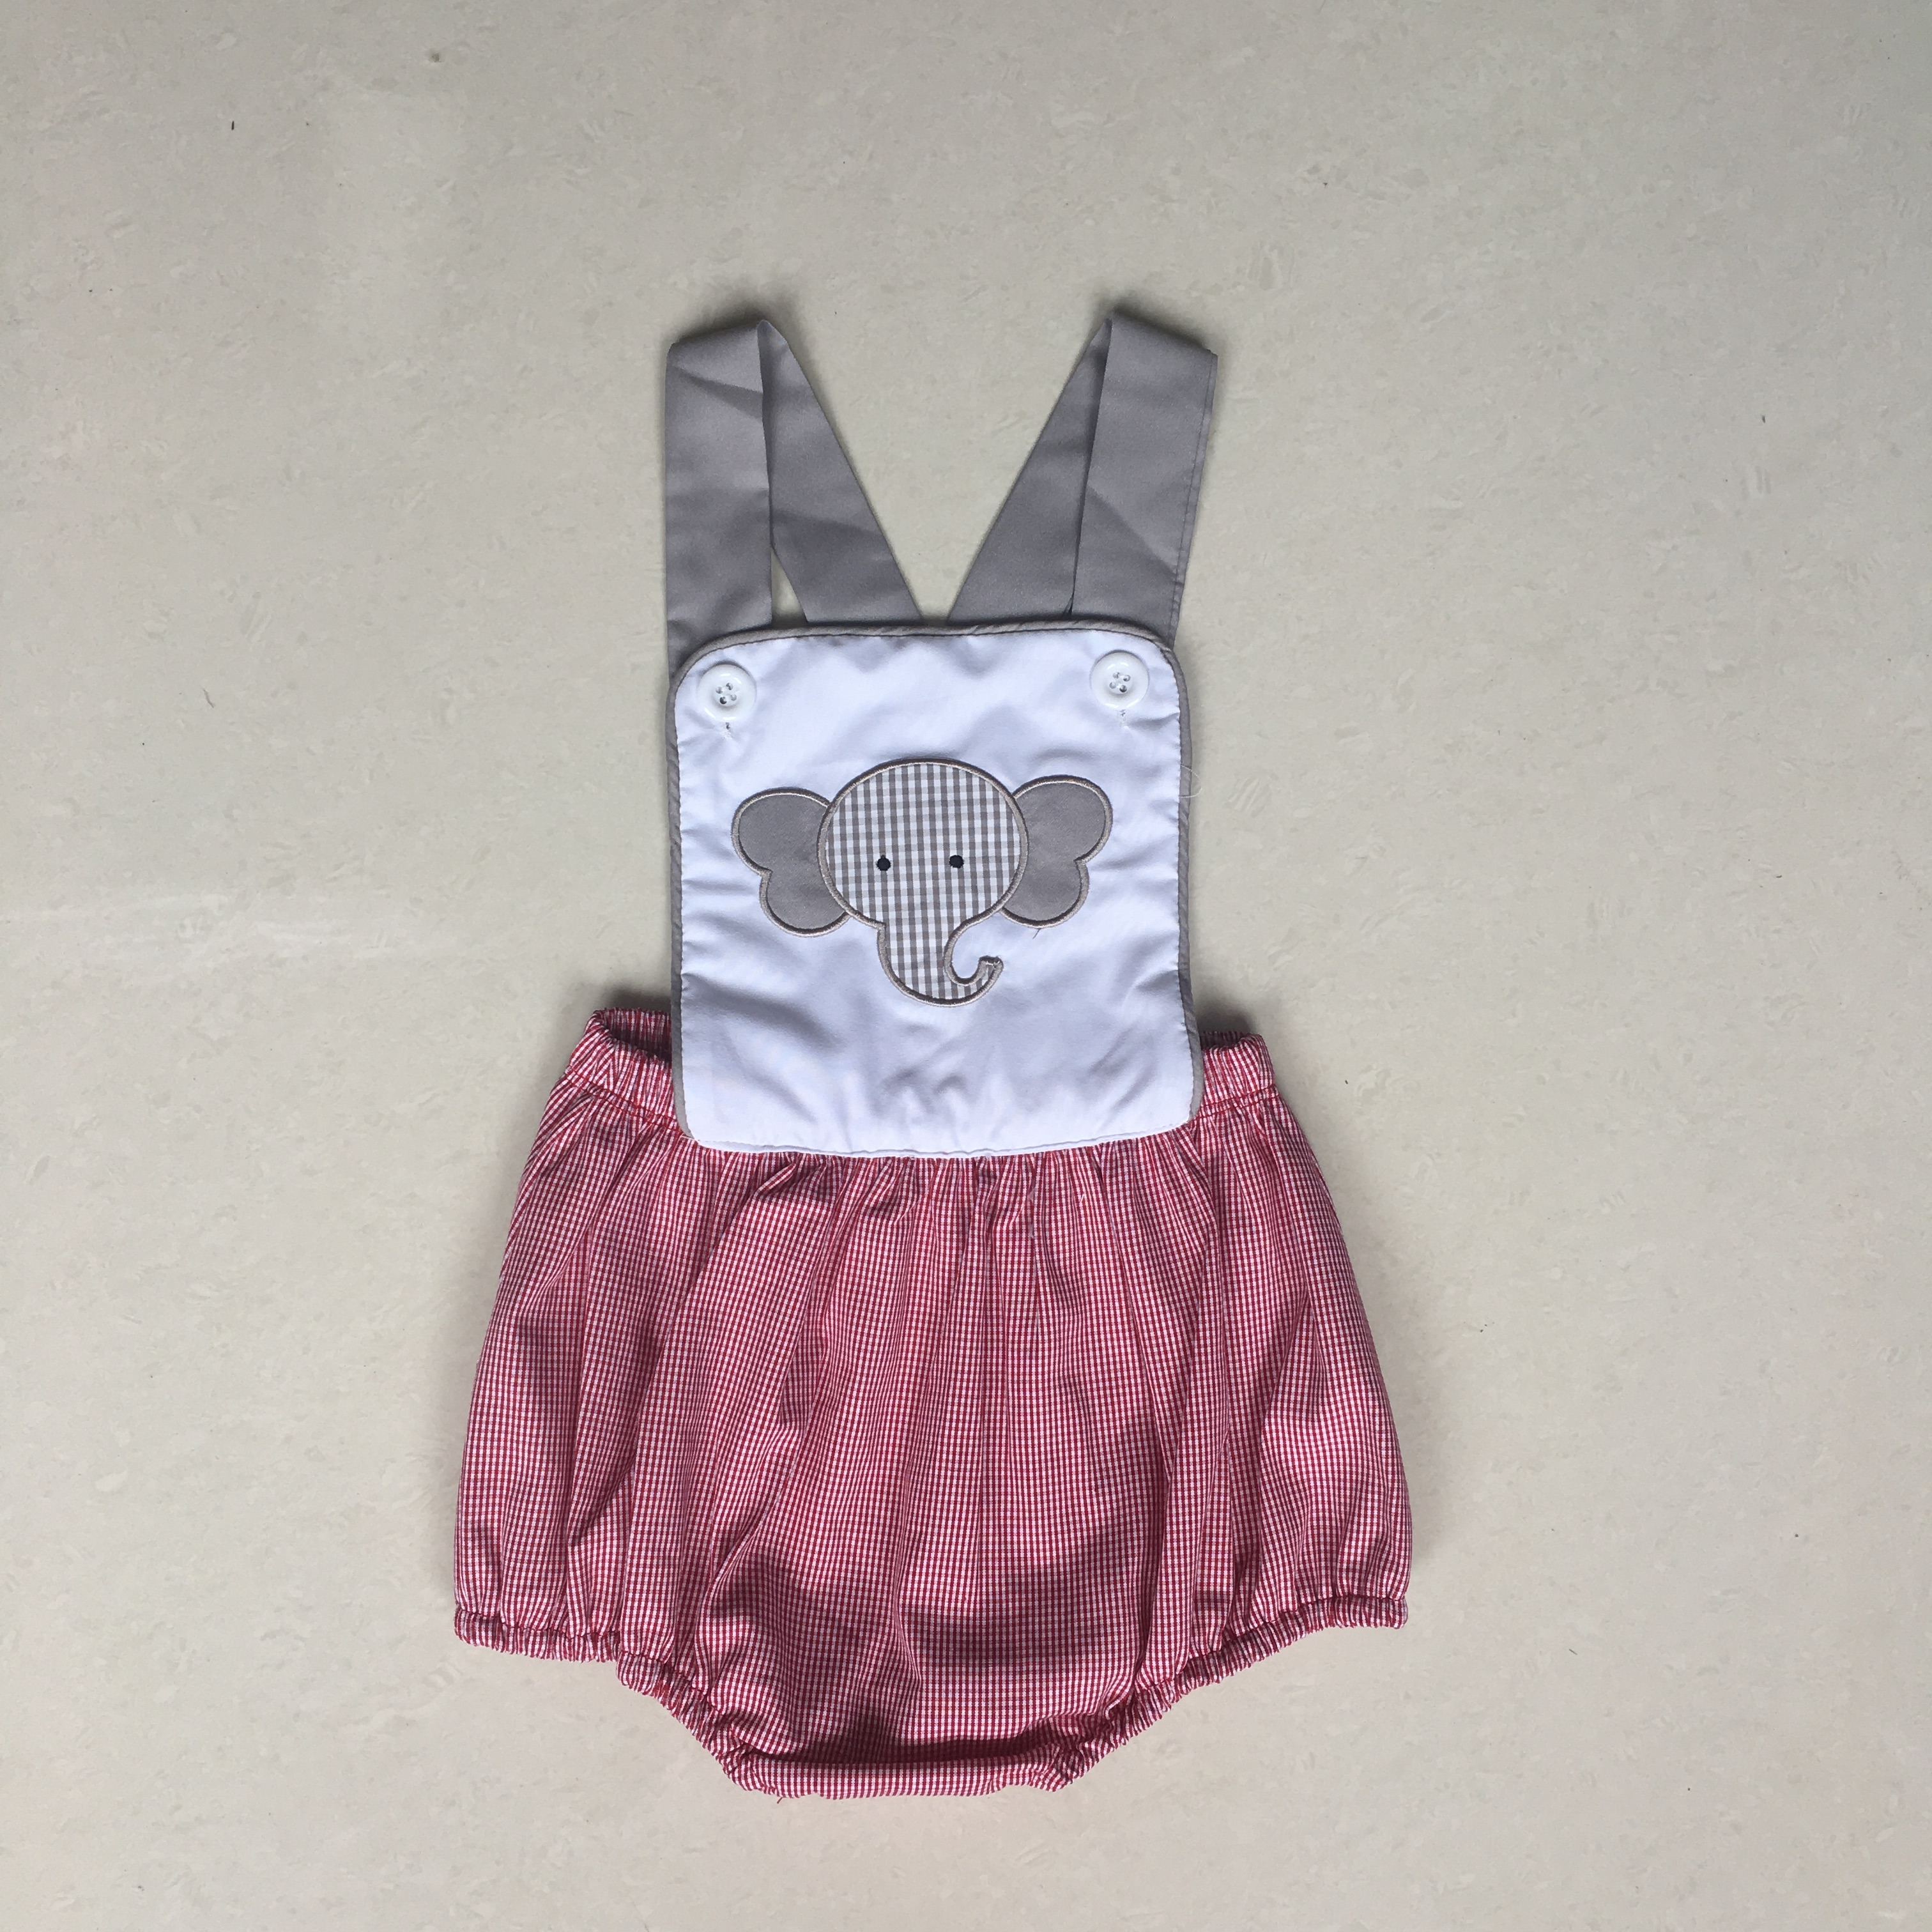 Puresun Fashion Summer Sibling Design Boy Romper Elephant Pattern Embroidery Bubble Boy Gingham Boutique Baby Cloth